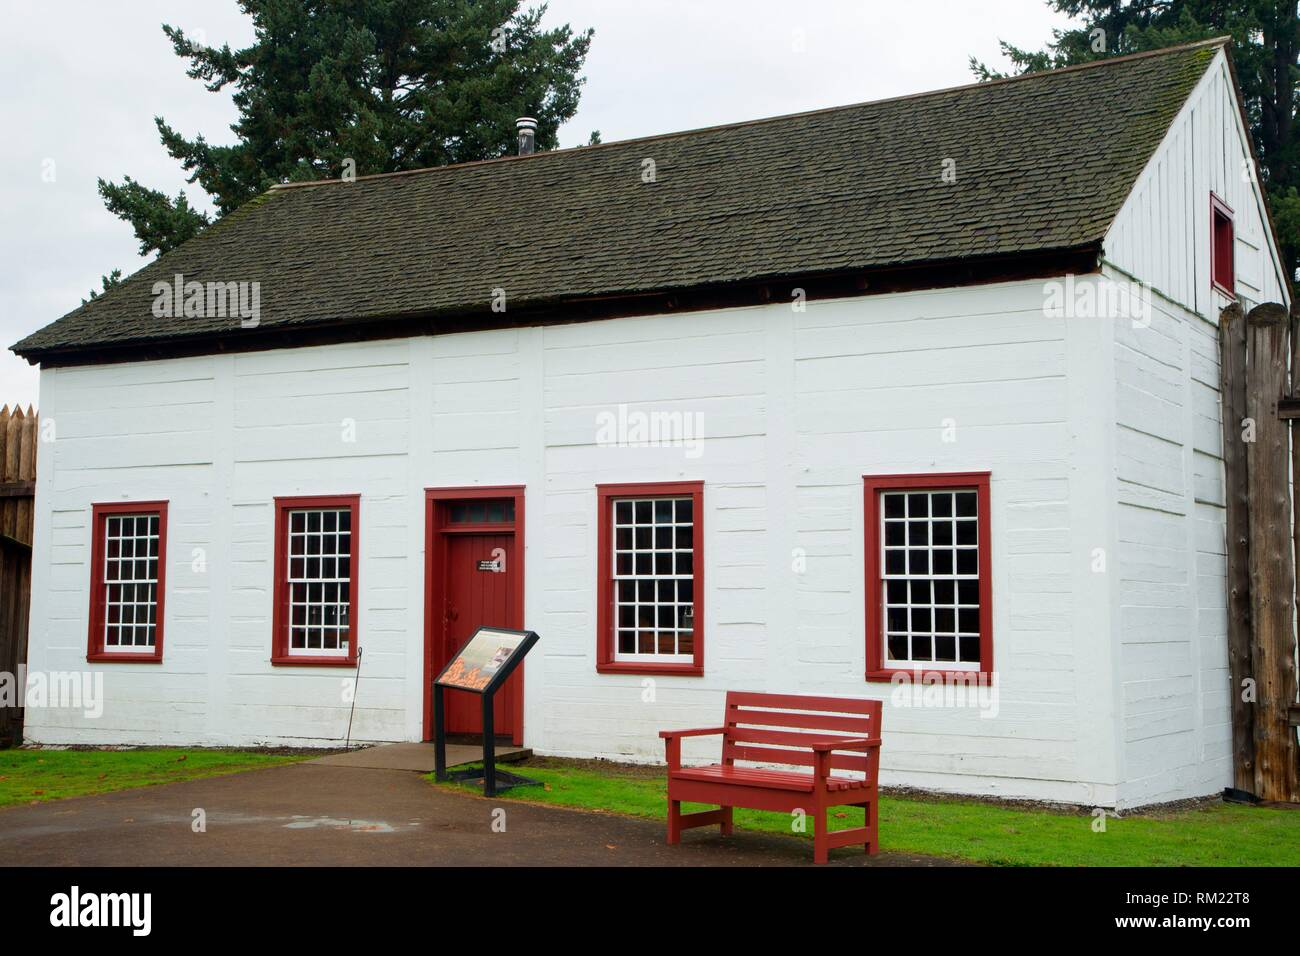 Bakehouse, Fort Vancouver National Historic Site, Vancouver National Historic Reserve, Washington. - Stock Image